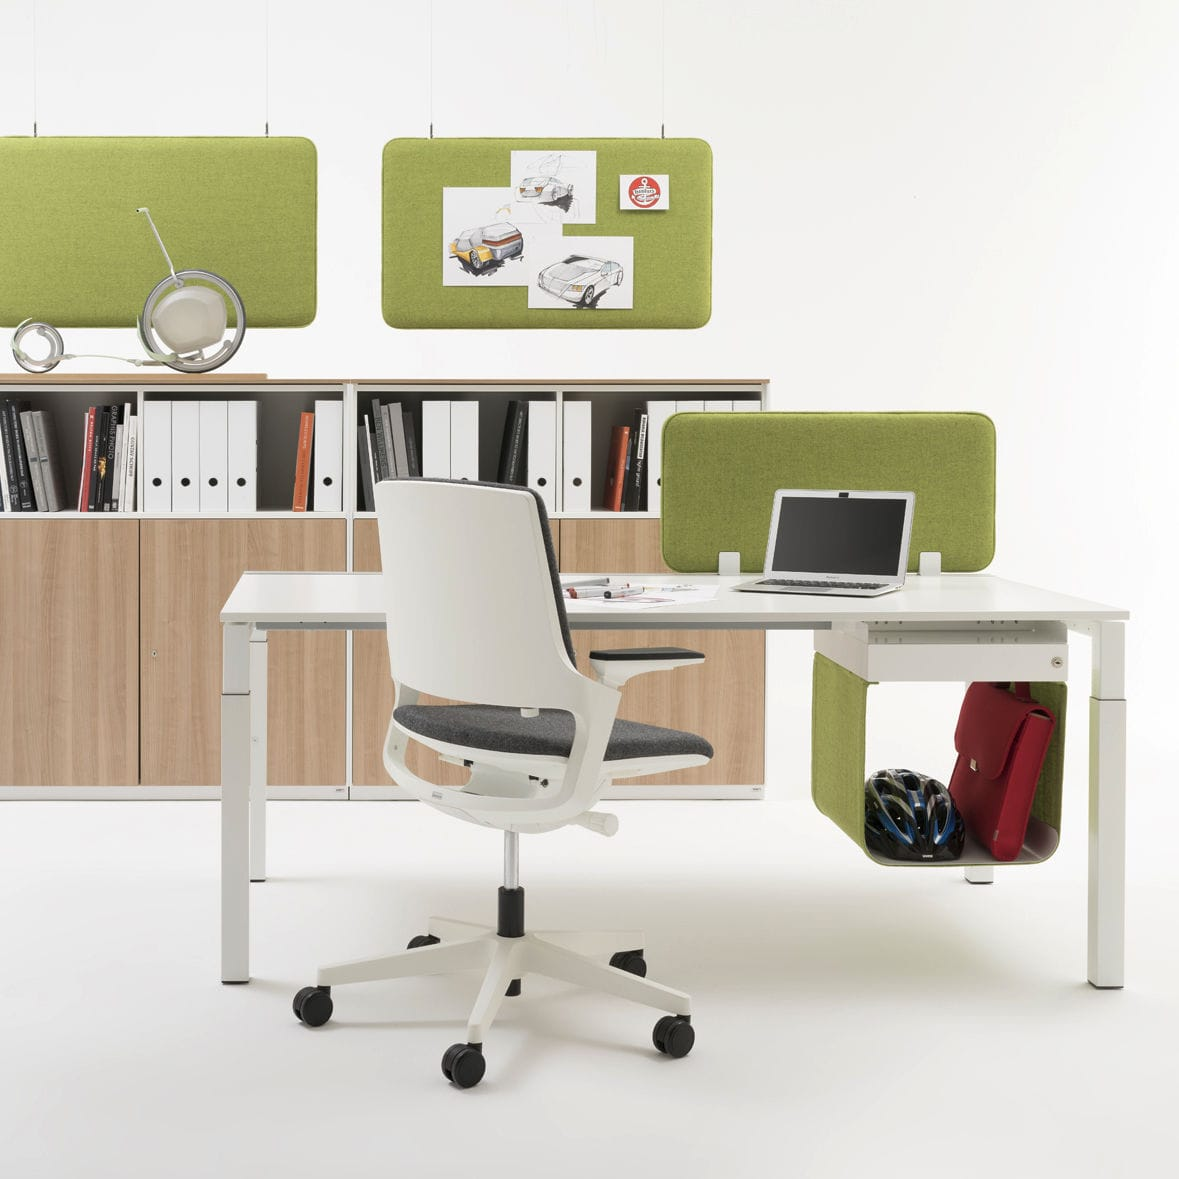 Steel office unit / 3-drawer / 2-drawer - WINEA TOOLZ MYBOX by Uwe ...